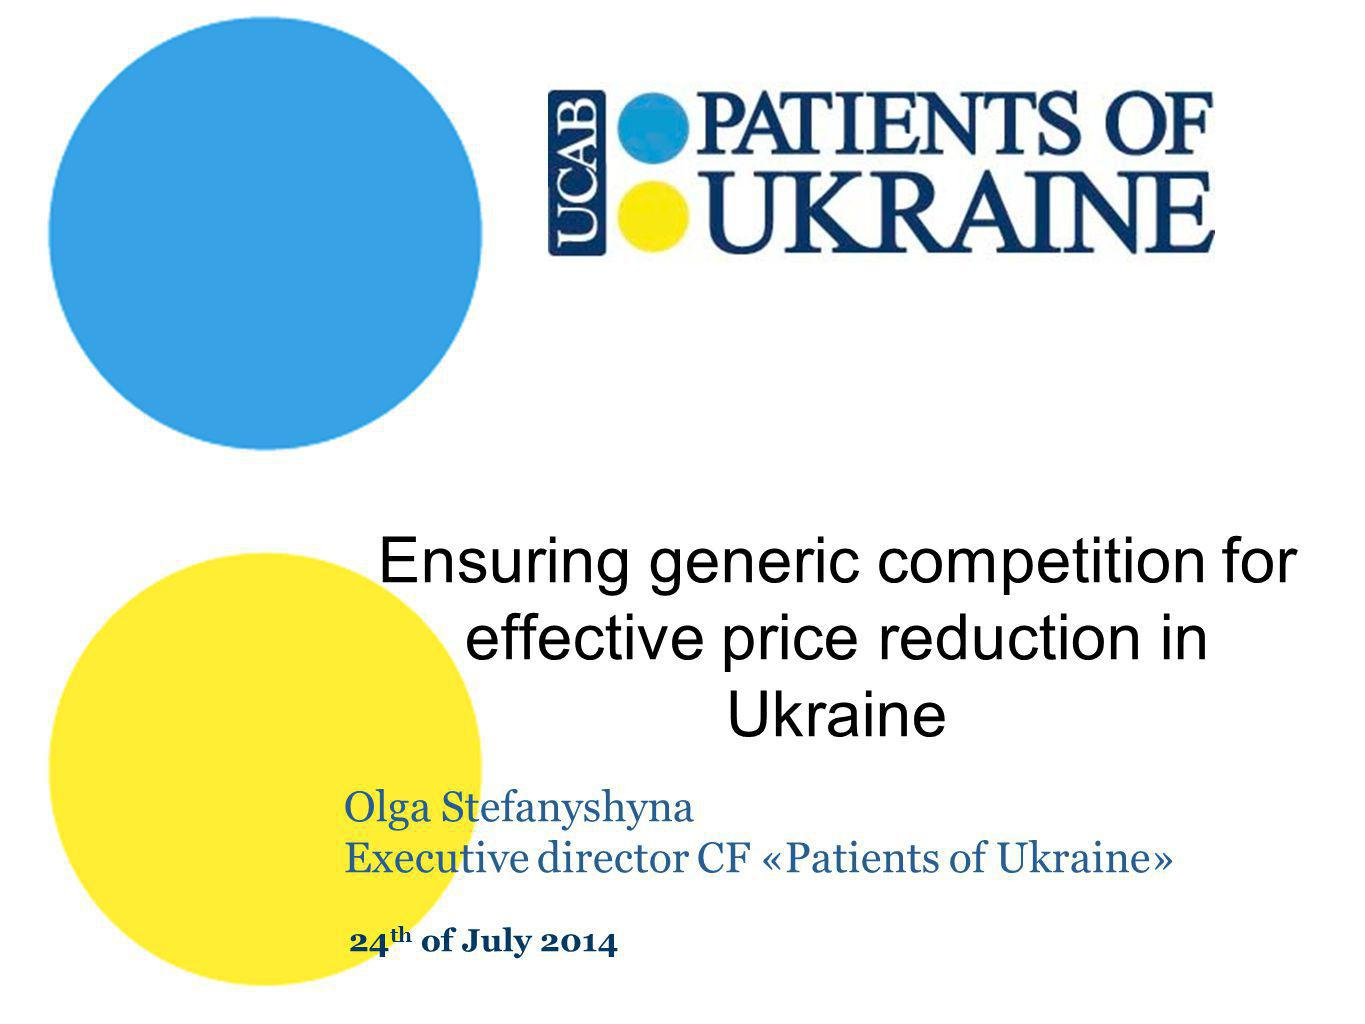 Ensuring generic competition for effective price reduction in Ukraine Olga Stefanyshyna Executive director CF «Patients of Ukraine» 24 th of July 2014